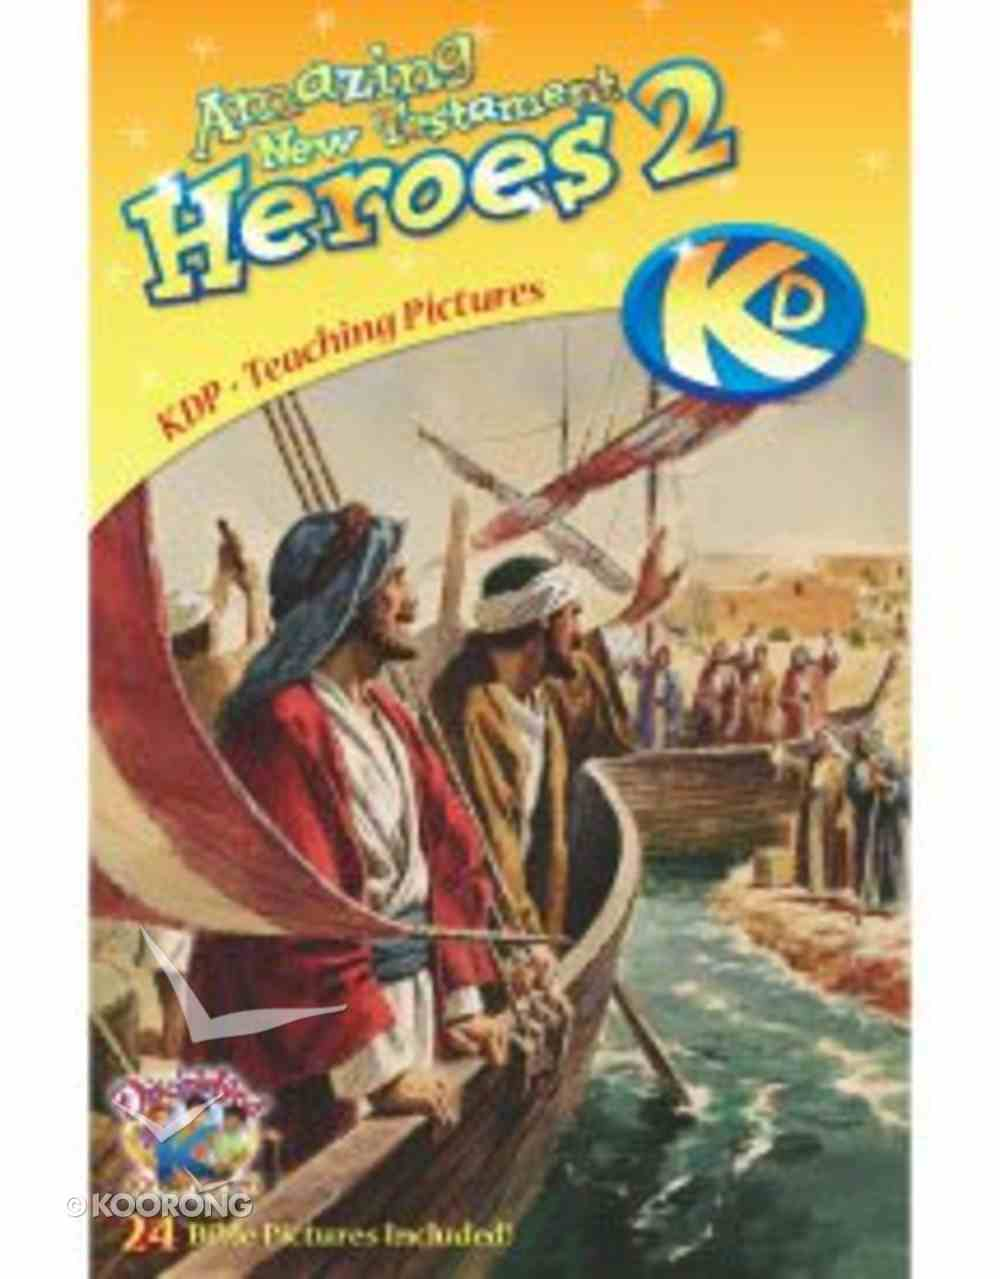 Dlc C5: Following the Faithful Teaching Pictures Ages 10-13 (New Testament Heroes) (Discipleland Level 5, Ages 10-12, Qtrs Abcd Series) Paperback